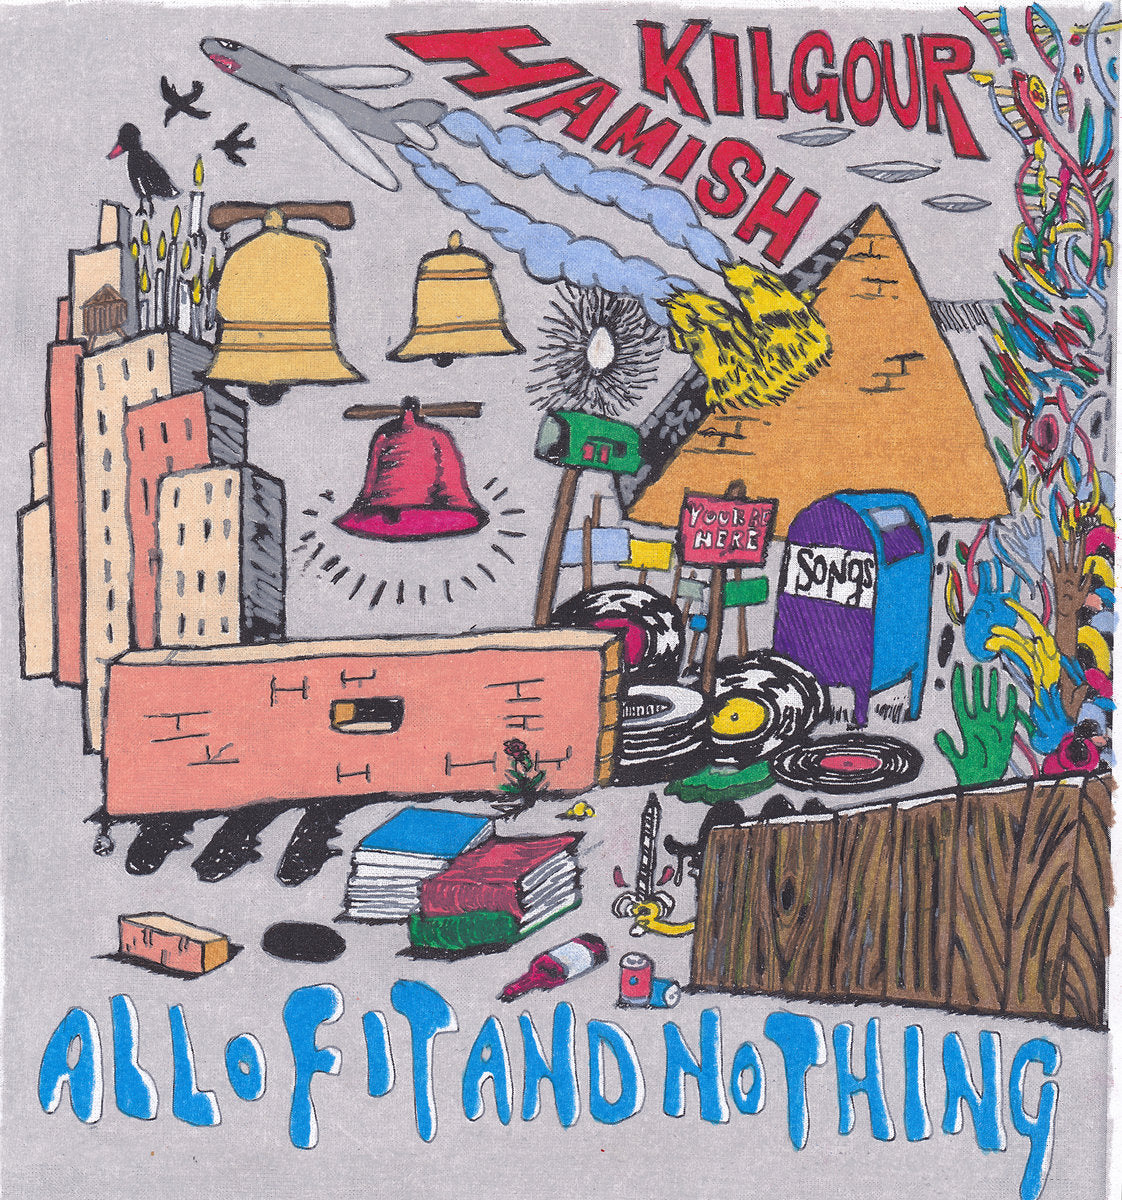 Hamish Kilgour - All Of It And Nothing (2014)